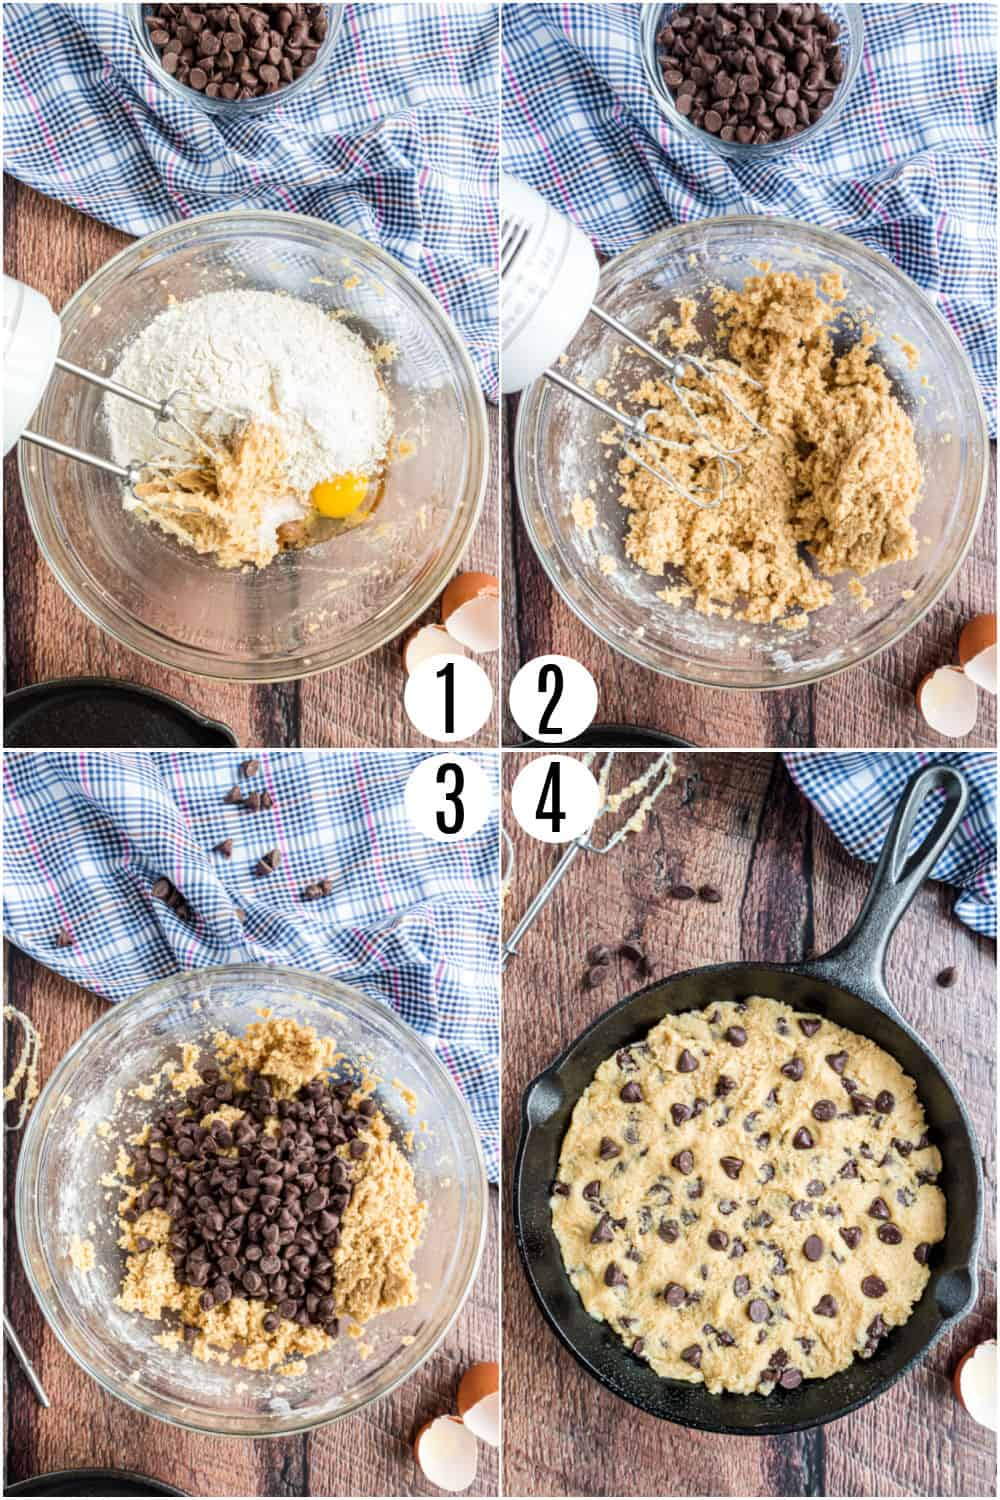 Step by step photos showing how to make a pizookie.